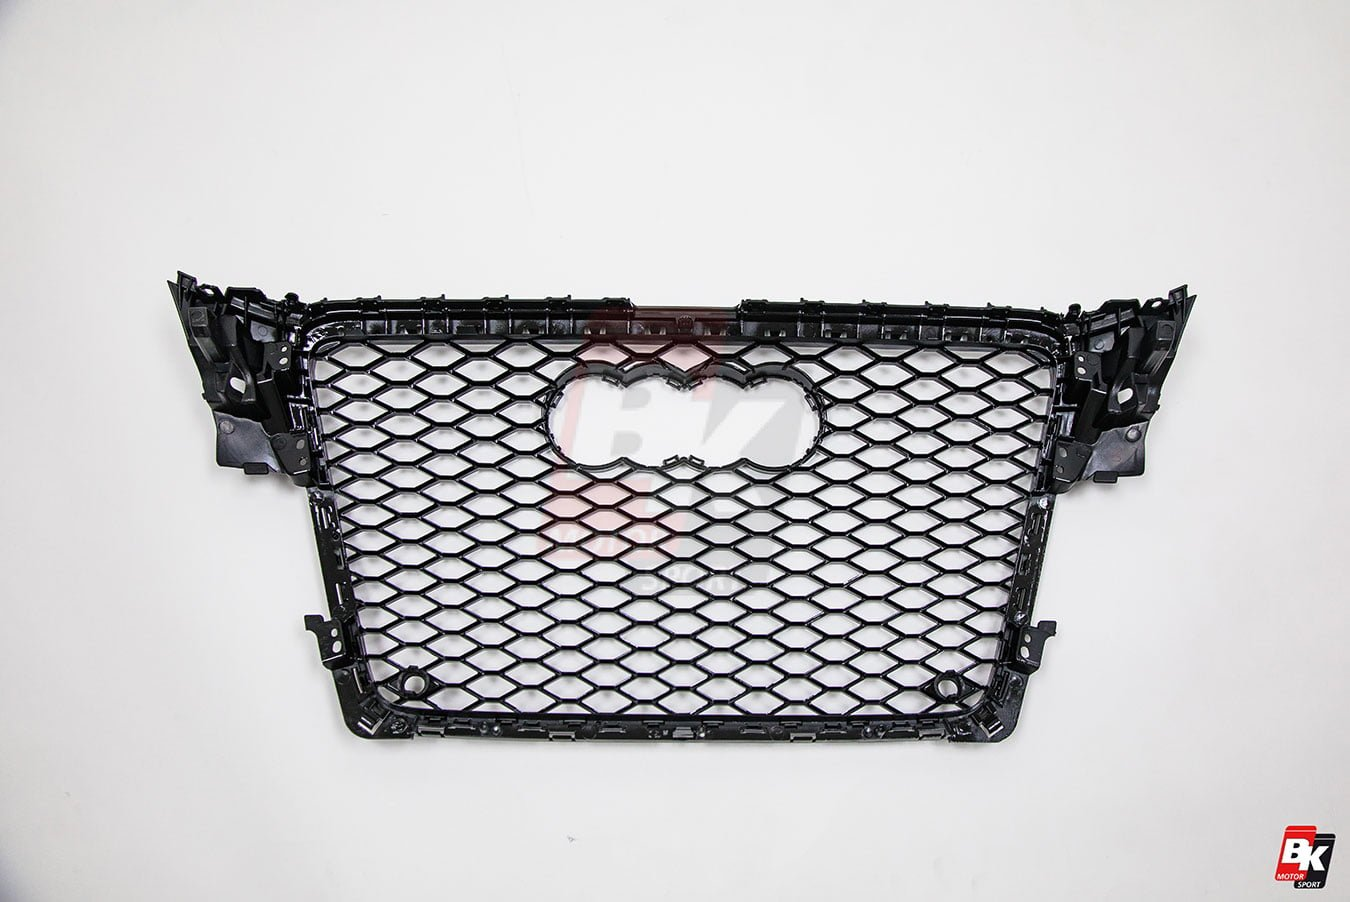 BKM Front Grille with Black Frame (RS4 Style), fits Audi A4/S4 B8.0